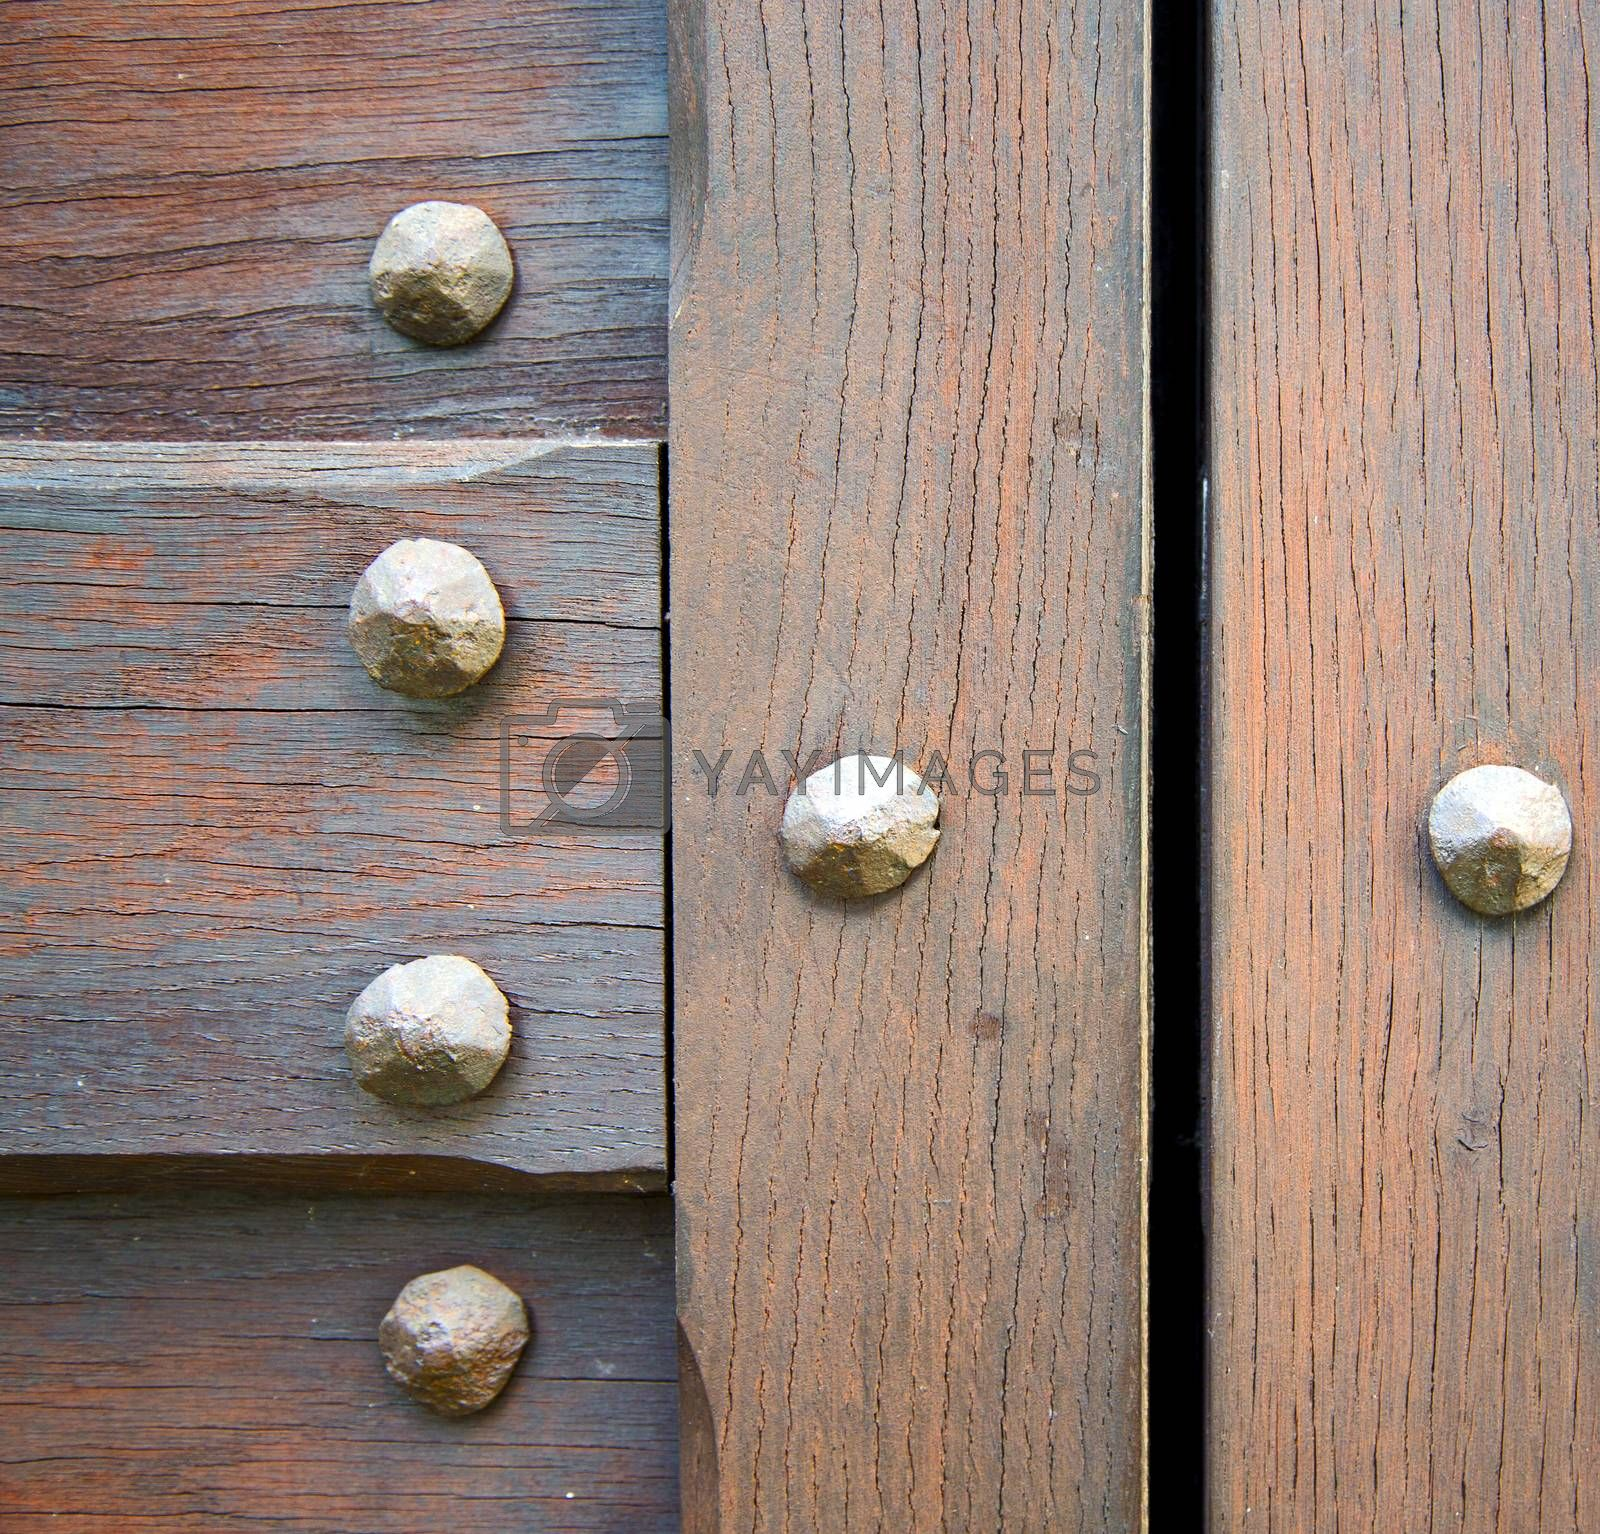 arsago  bstract   rusty   wood italy  lombardy    by lkpro